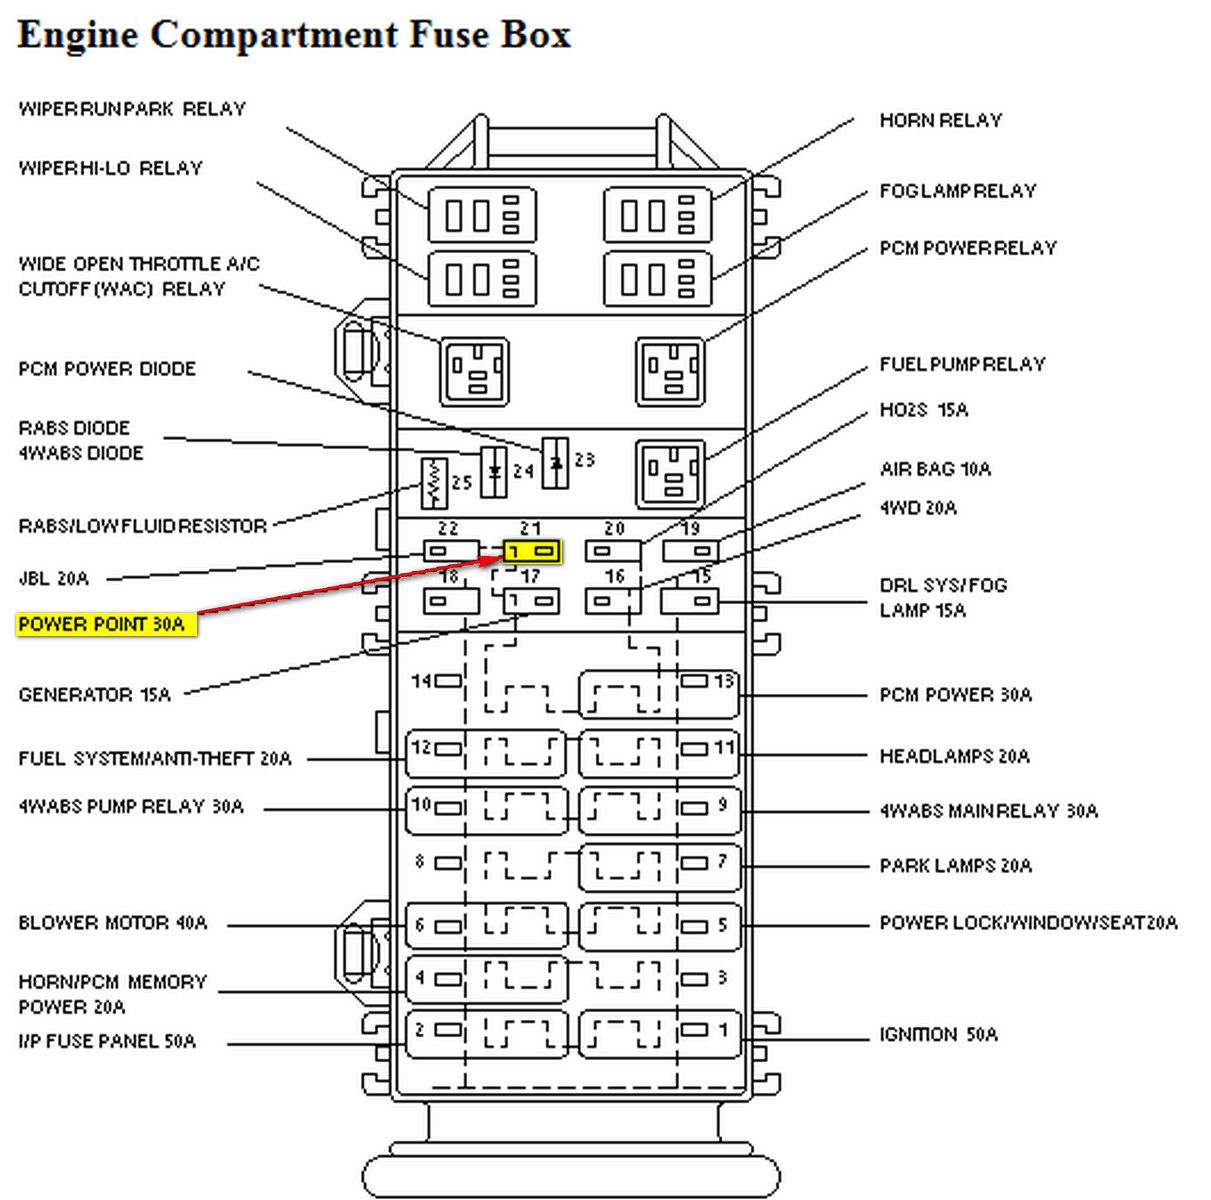 hight resolution of 1997 ford ranger fuse box diagram truck part diagrams ford ranger 1998 ford crown victoria fuse box diagram 1997 ford explorer headlight fuse box diagram